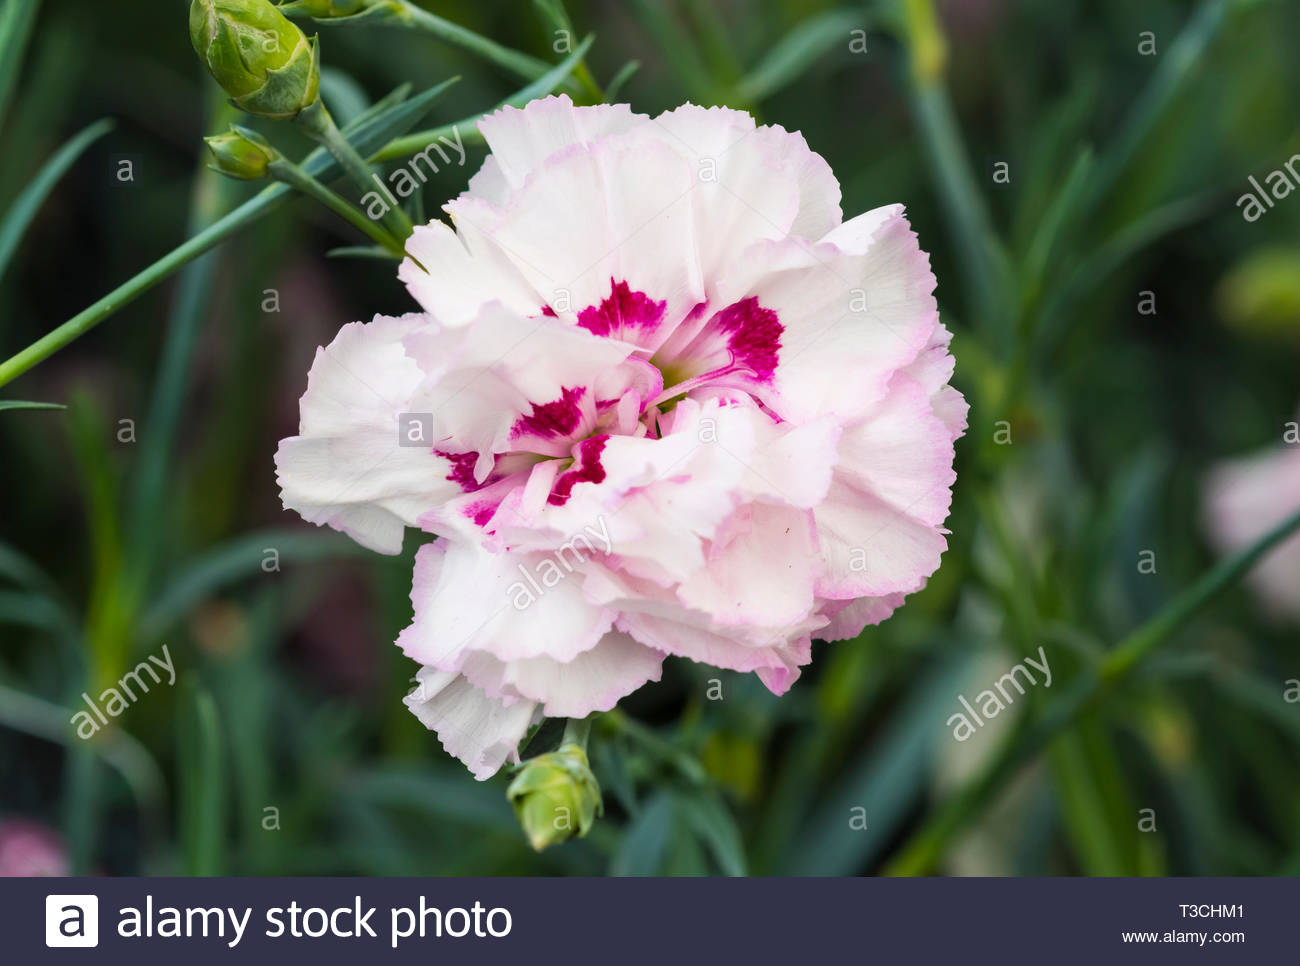 Dianthus Cottage Pink 'Gran's Favourite' Carnation flower blooming in Spring in West Sussex, UK. - Stock Image